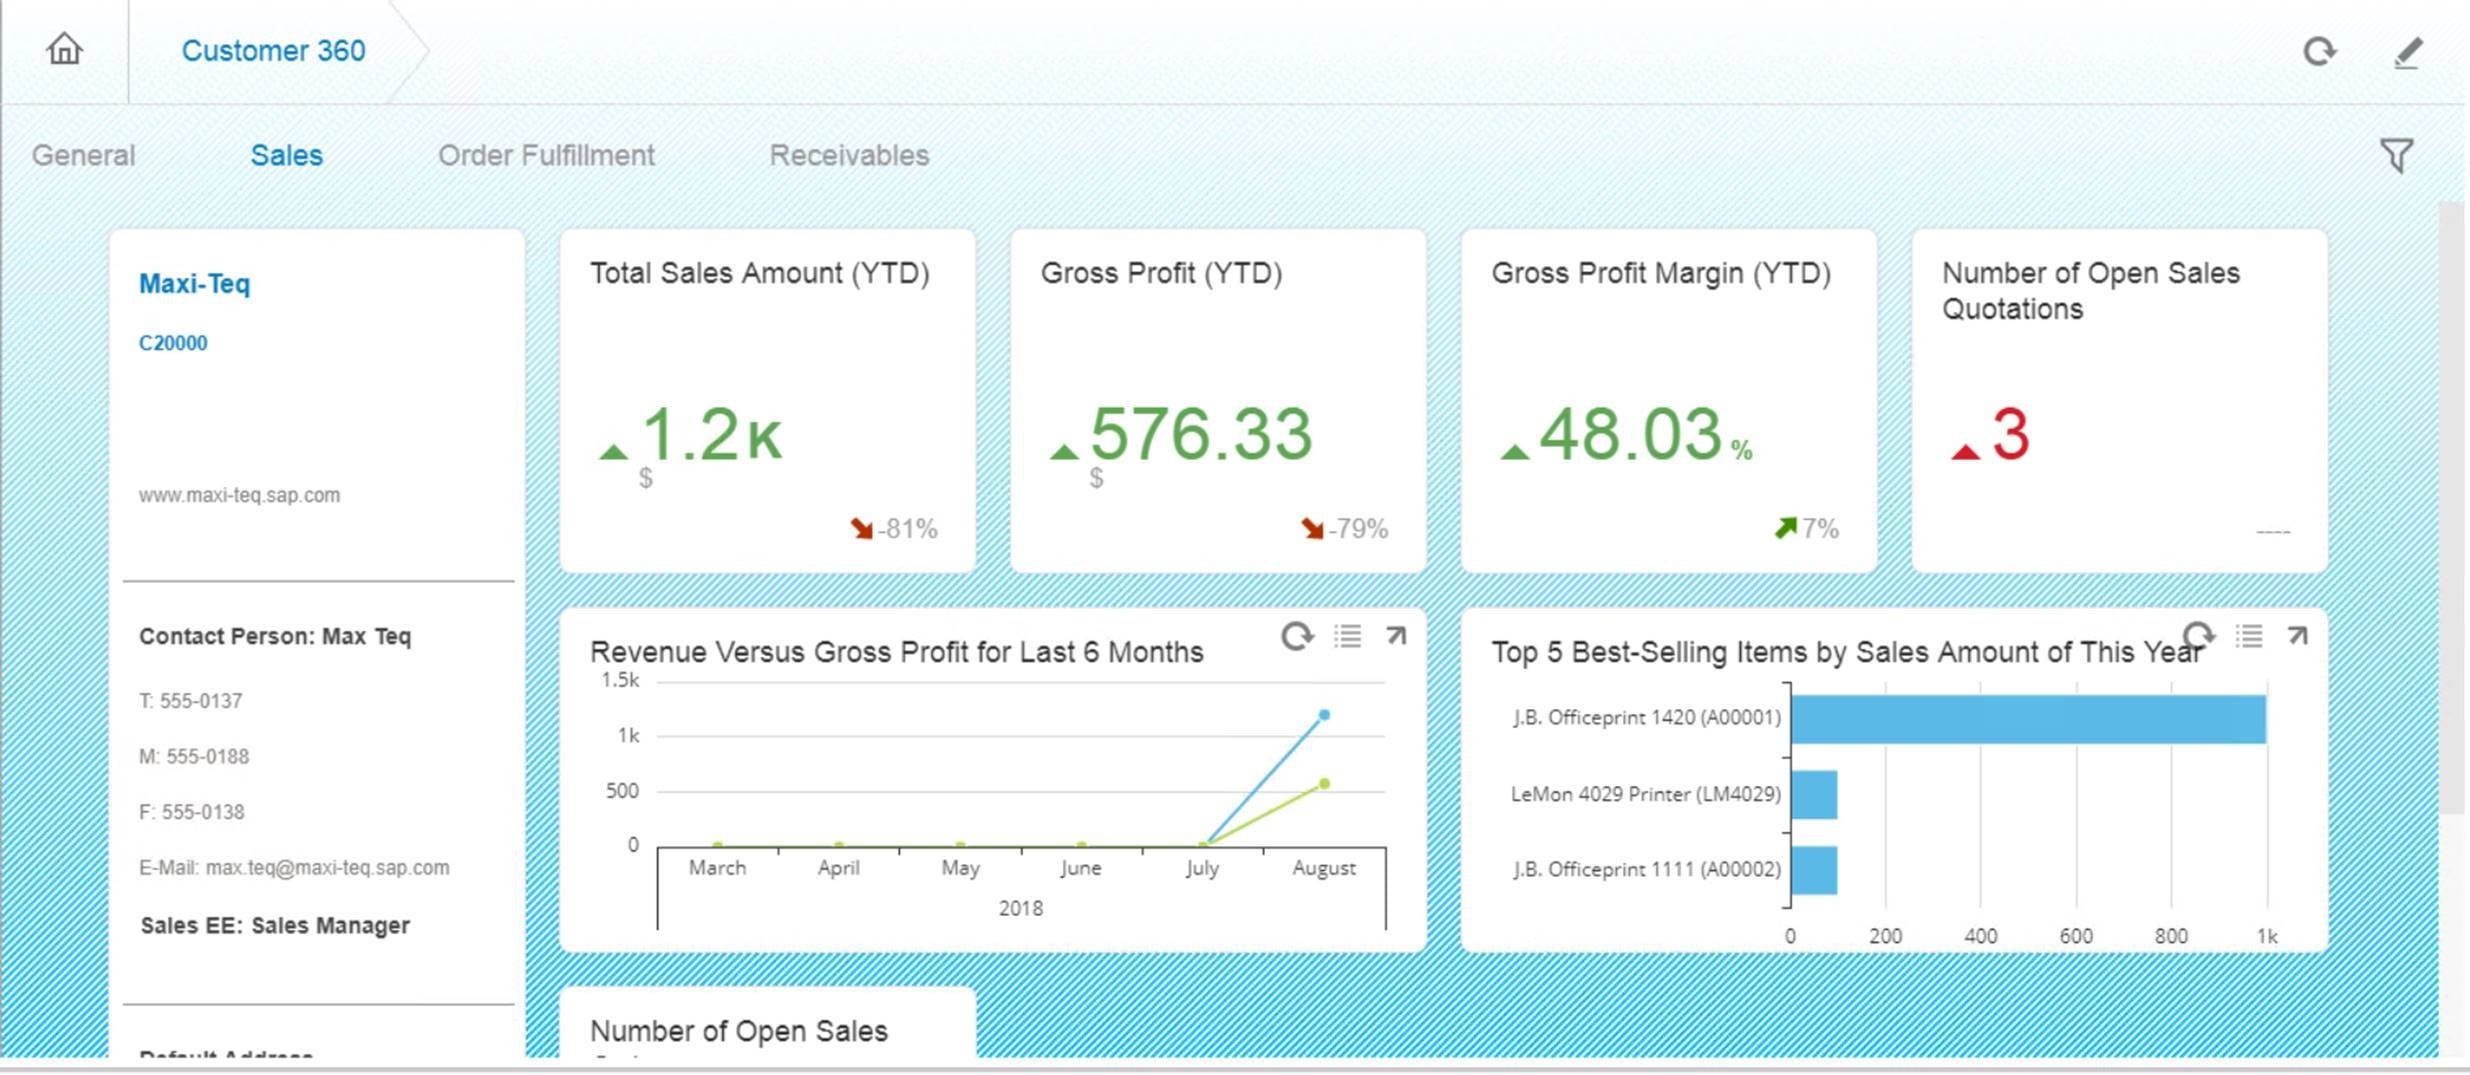 OptiProERP with Sap Business One Software - 360 Customer View